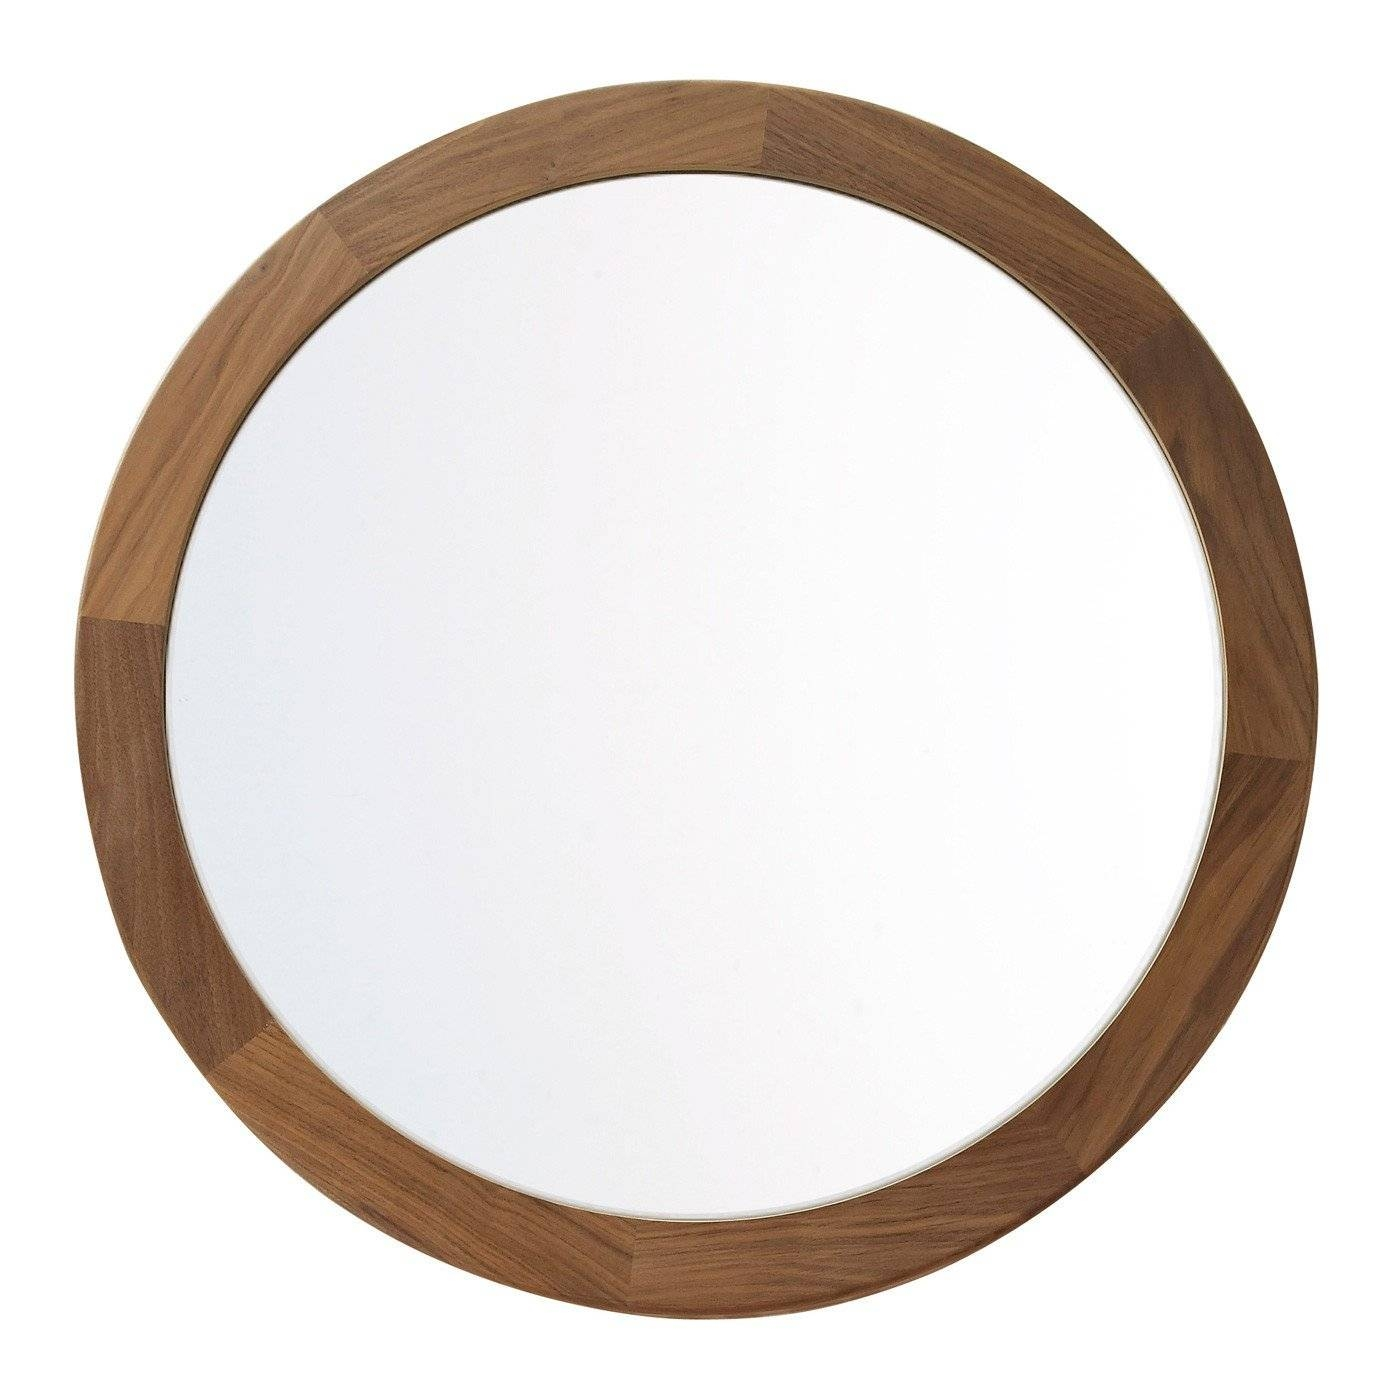 Heal's Walnut Frame Round Mirror intended for Black Round Mirrors (Image 10 of 25)